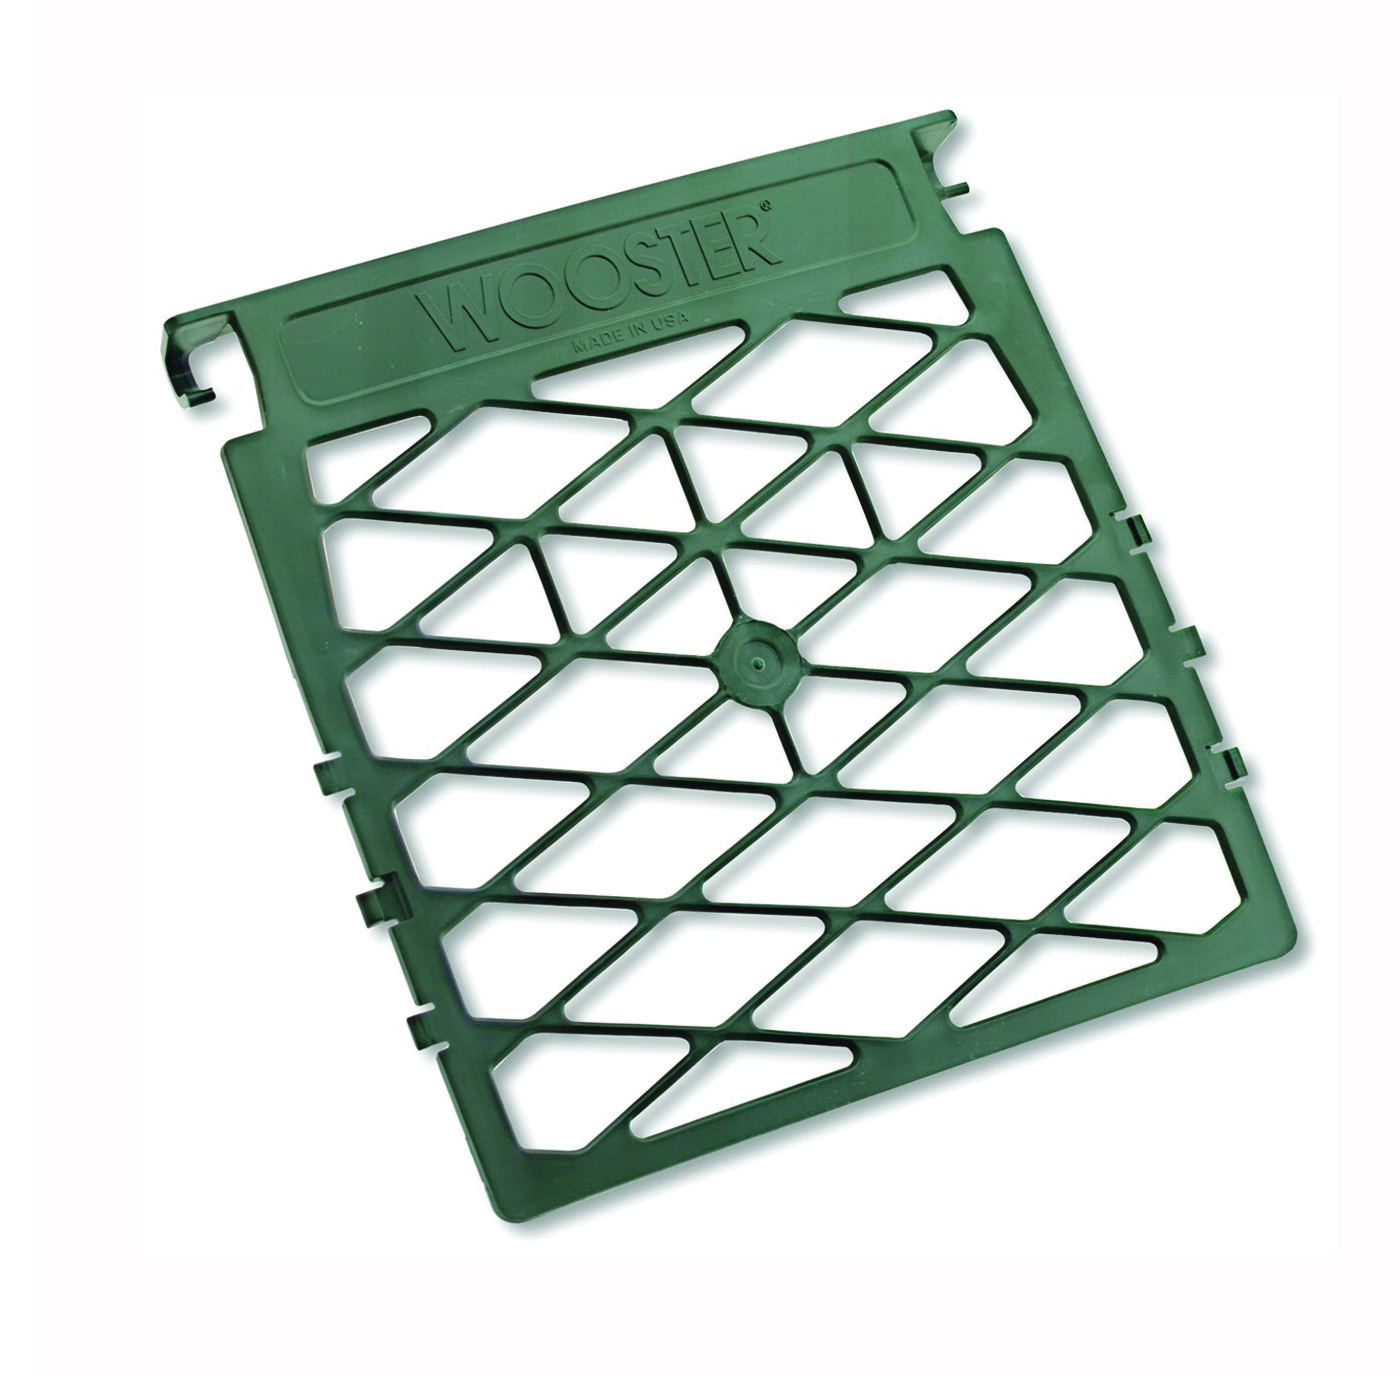 Picture of WOOSTER R007 Paint Grid, 10-1/2 in L, 10-1/2 in W, Polypropylene, Green